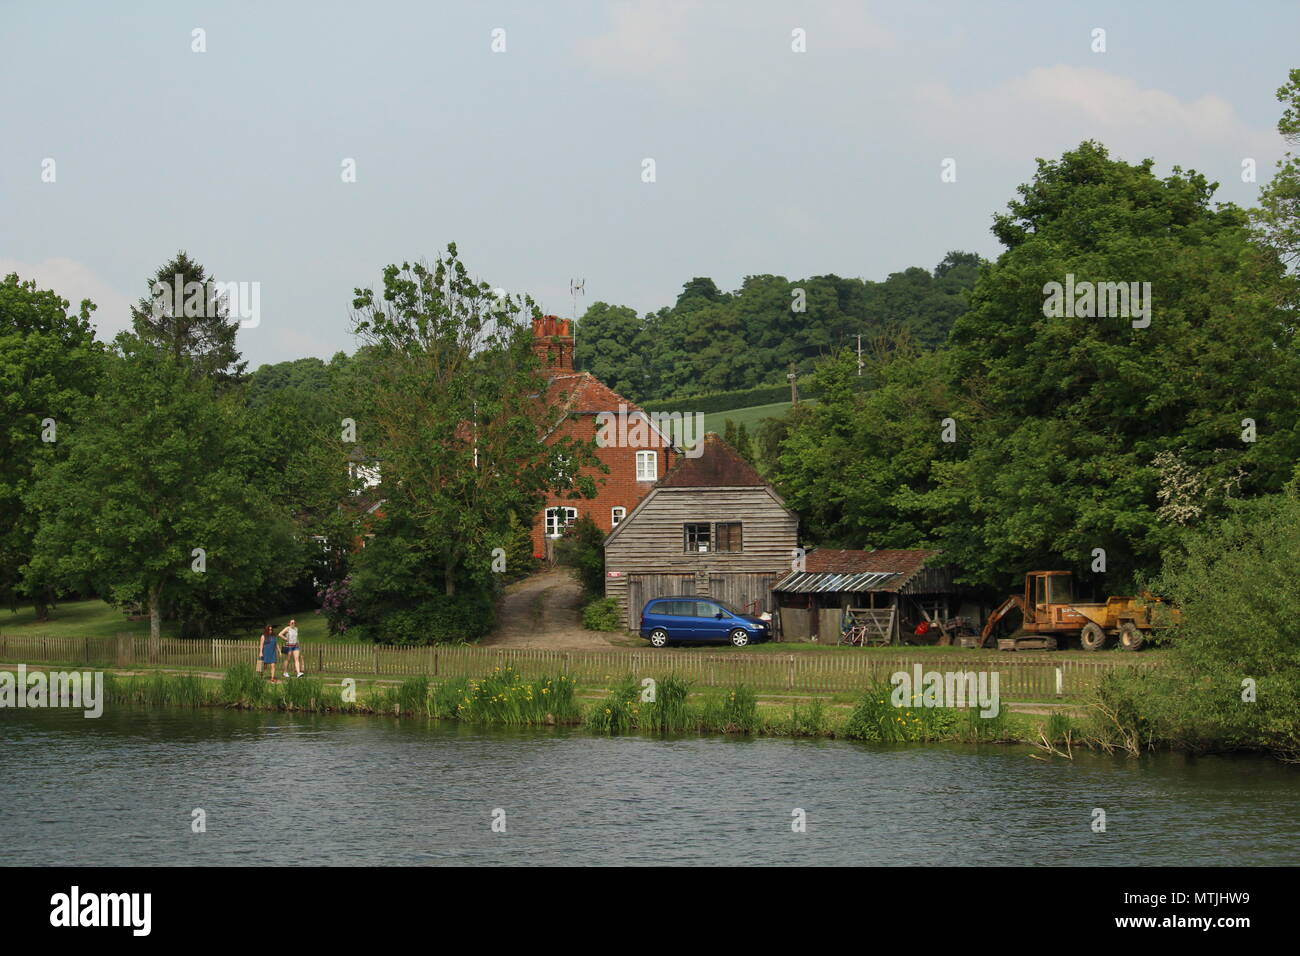 Lifestyle - couple walking  alongside waterfront property on River Thames at Henley-on-Thames Oxfordshire, Britain. - Stock Image